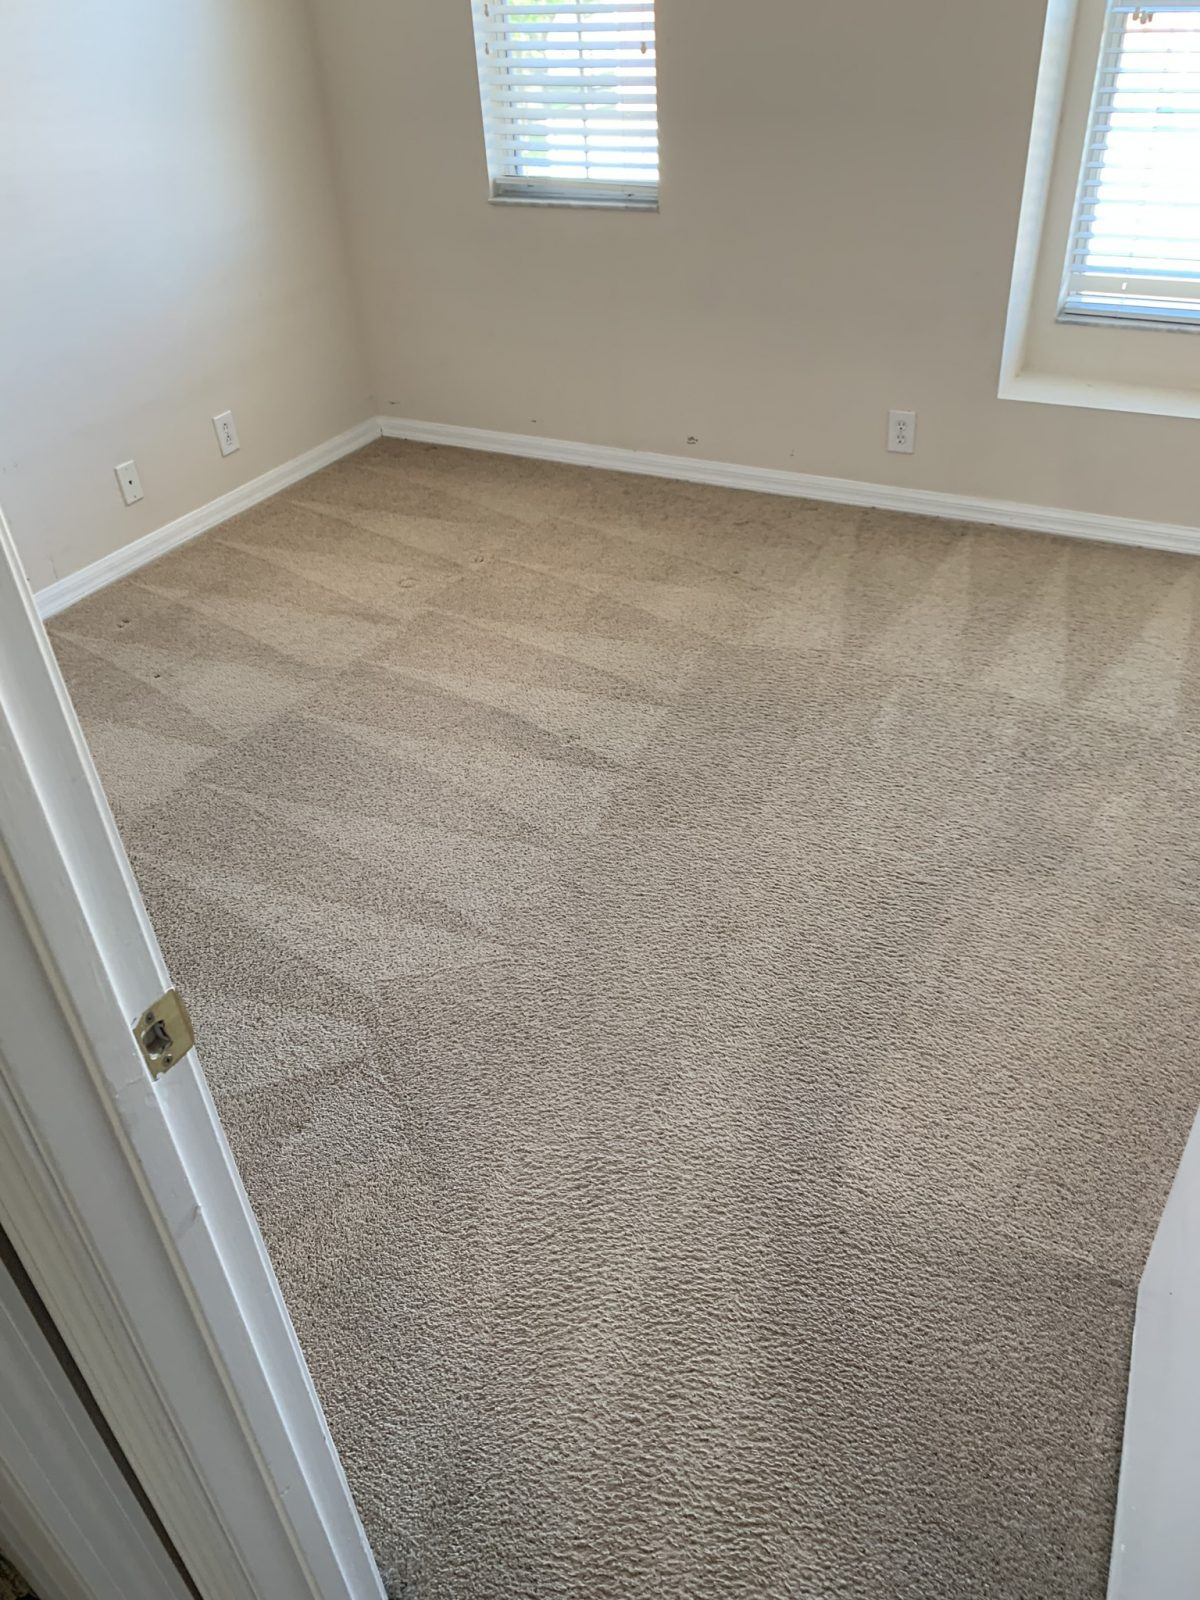 Professional Carpet Cleaning Oldsmar Florida by Howards Cleaning Service